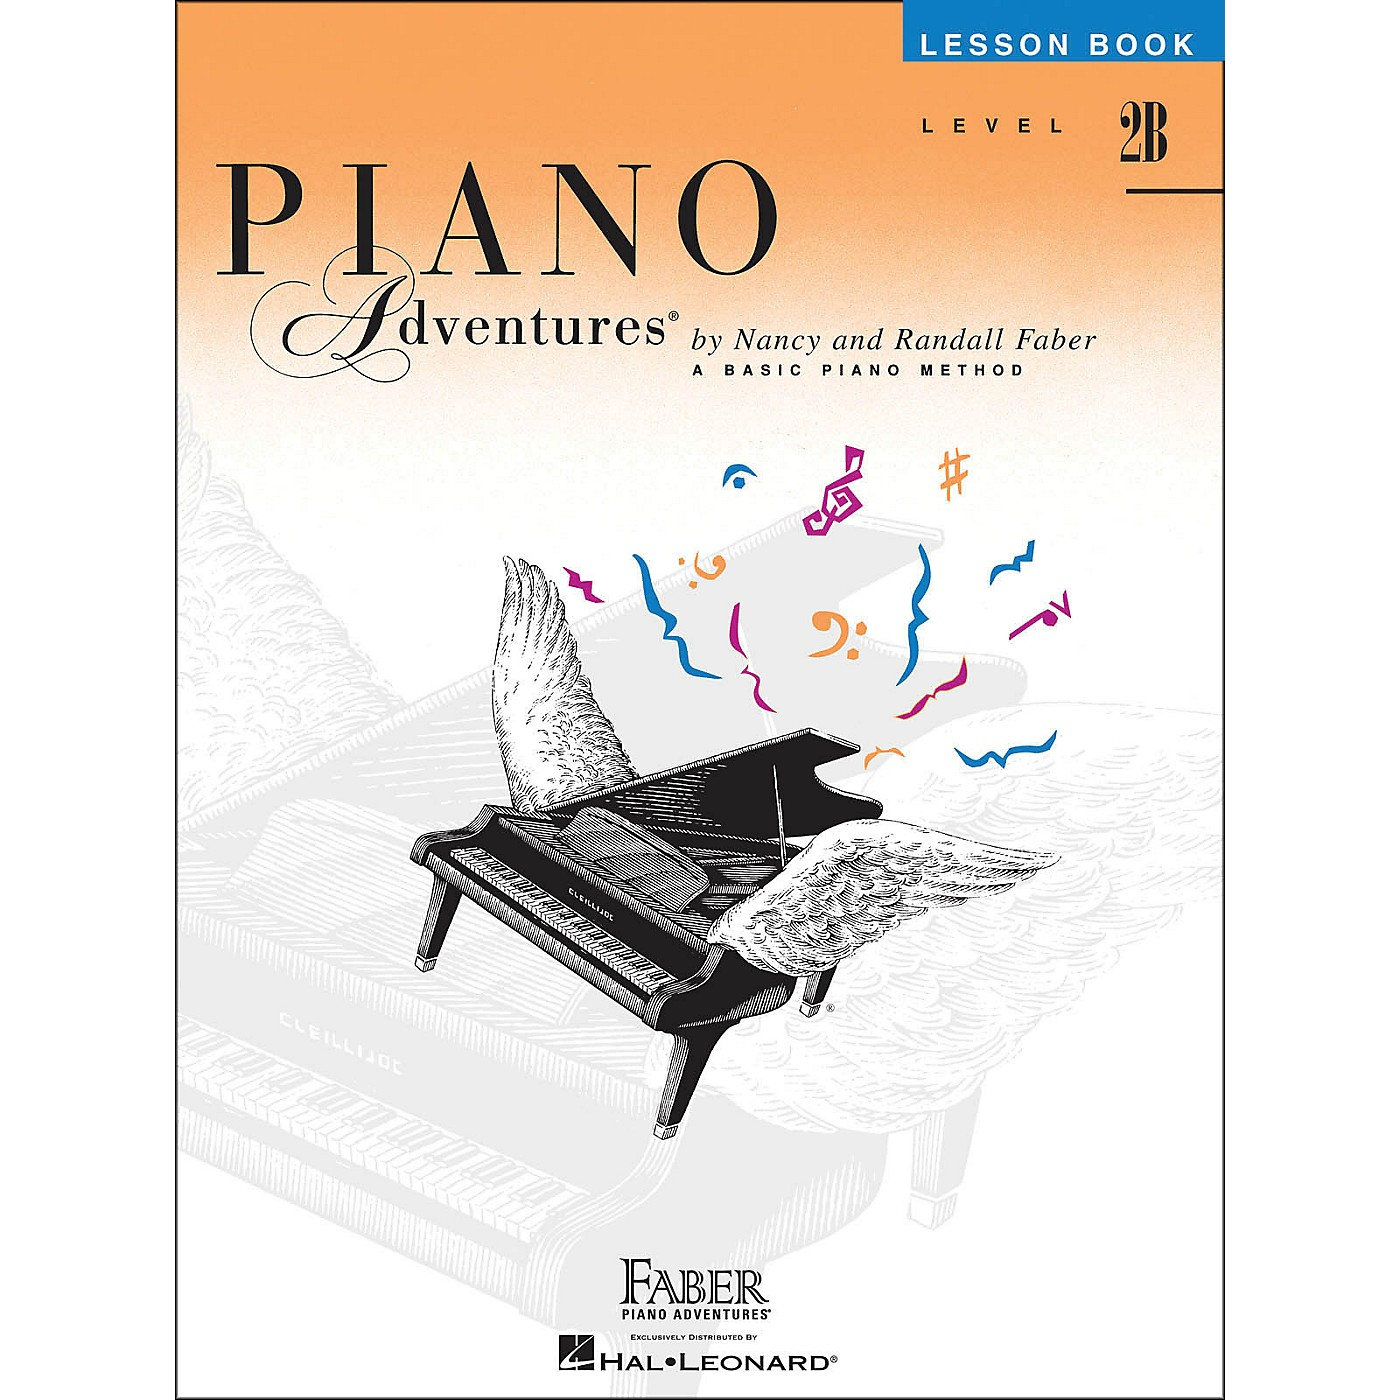 Faber Piano Adventures Piano Adventures Lesson Book Level 2B thumbnail